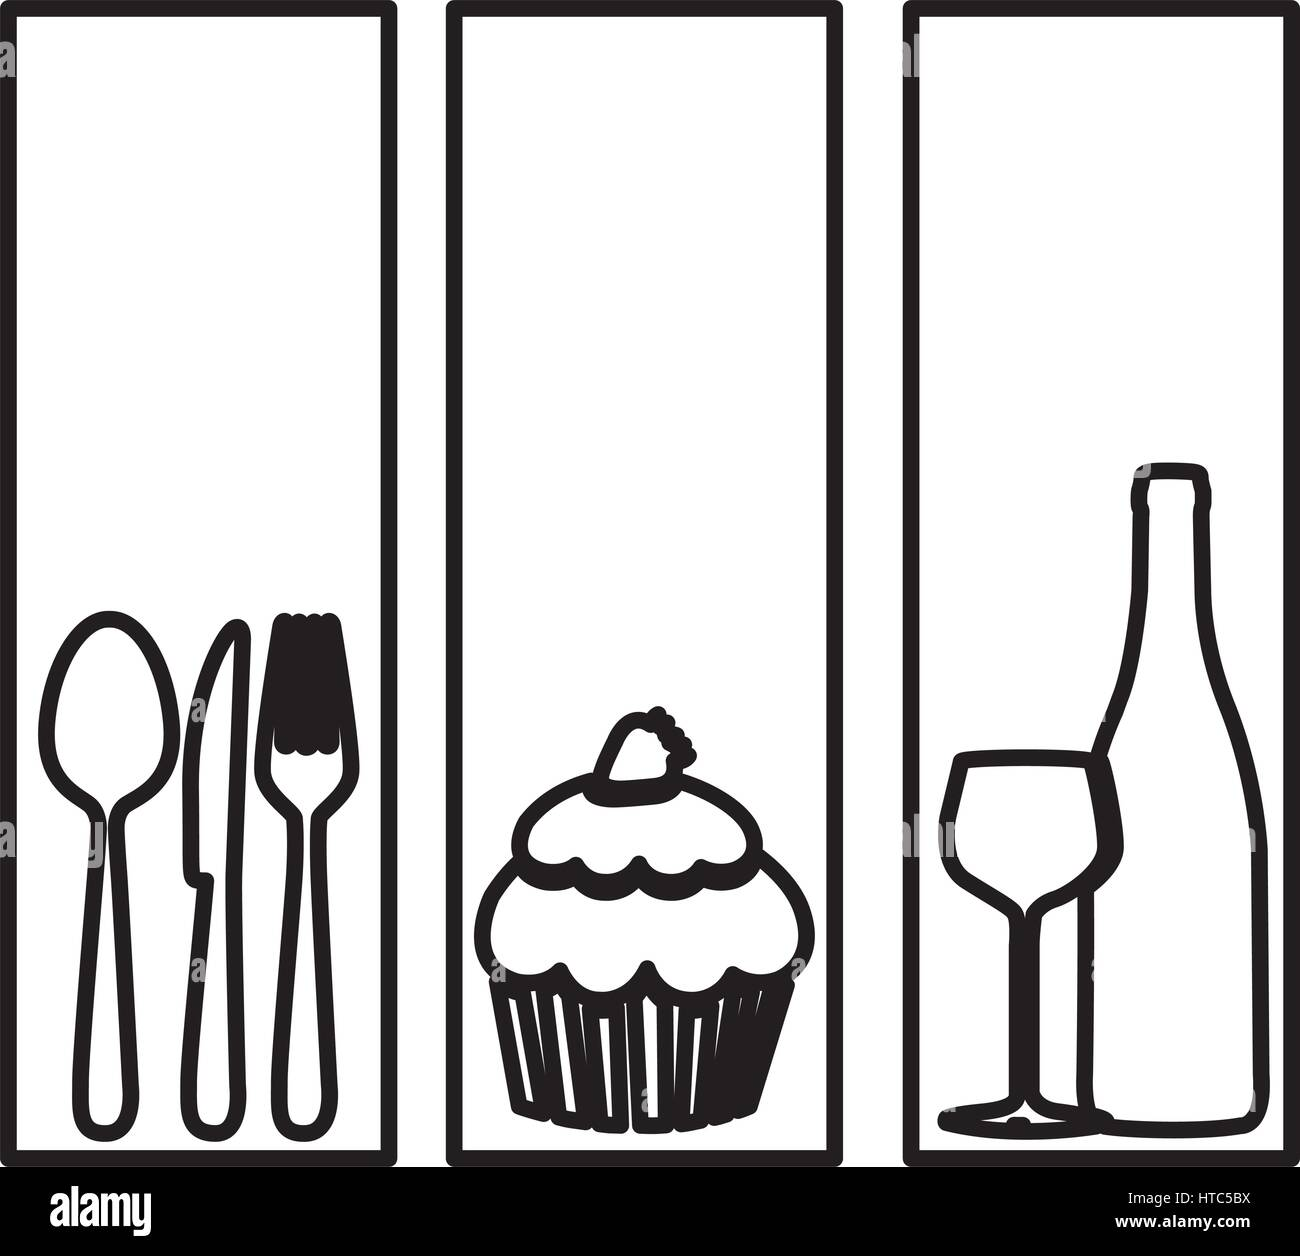 Symbol Cutlery Muffin Wine Bottle And Glass Stock Vector Art